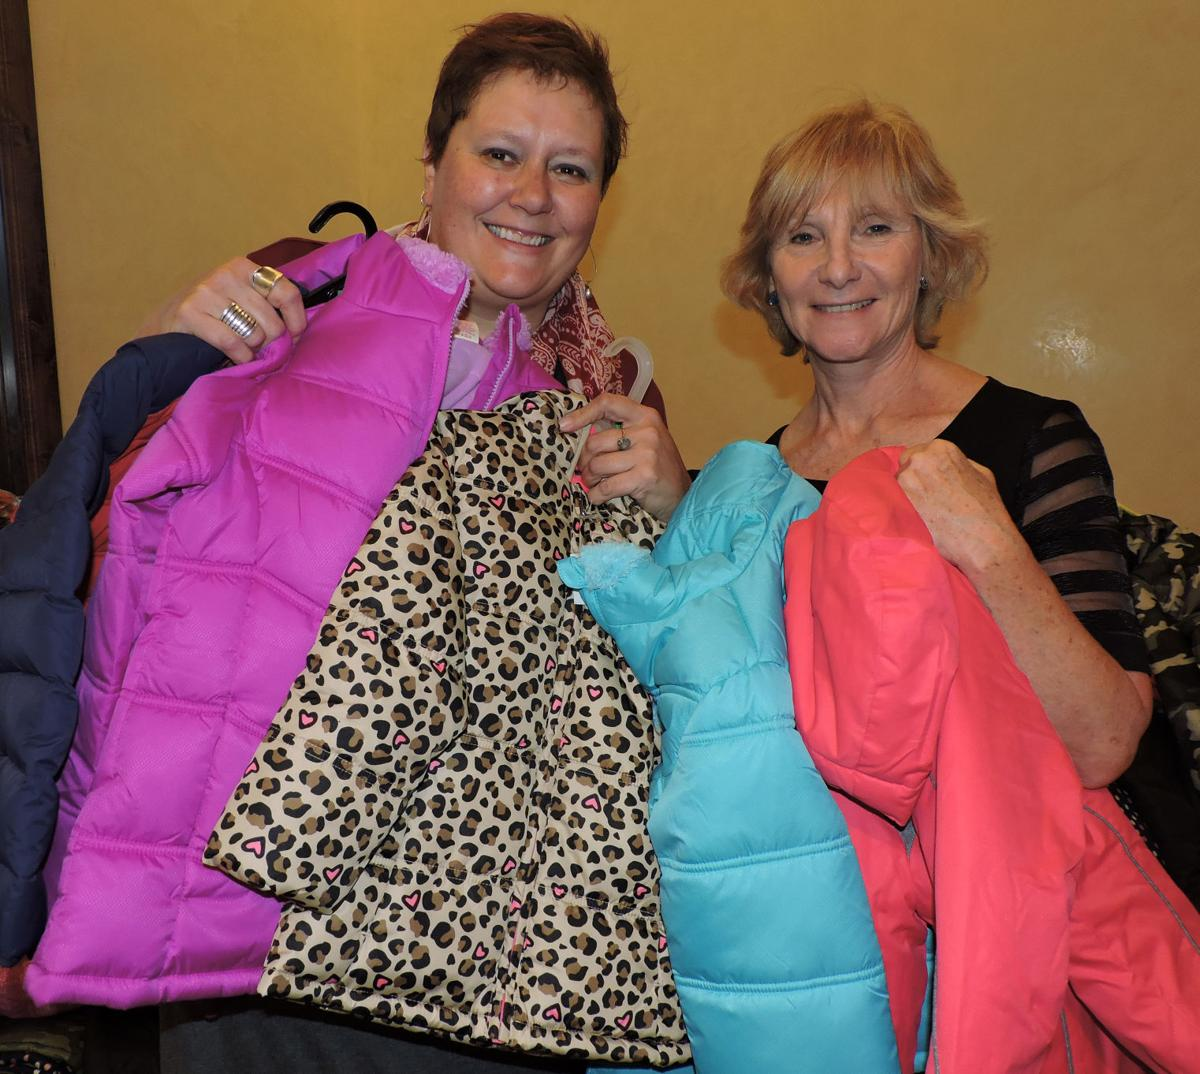 Abrams Elementary principal Lois Skaggs, left, with volunteer Madeleine Mellini, holds some of the hundreds of Koats 4 Kids donations destined for the Fountain-Fort Carson District 8 school. 102116 Photo by Linda Navarro102116 Photo by Linda Navarro